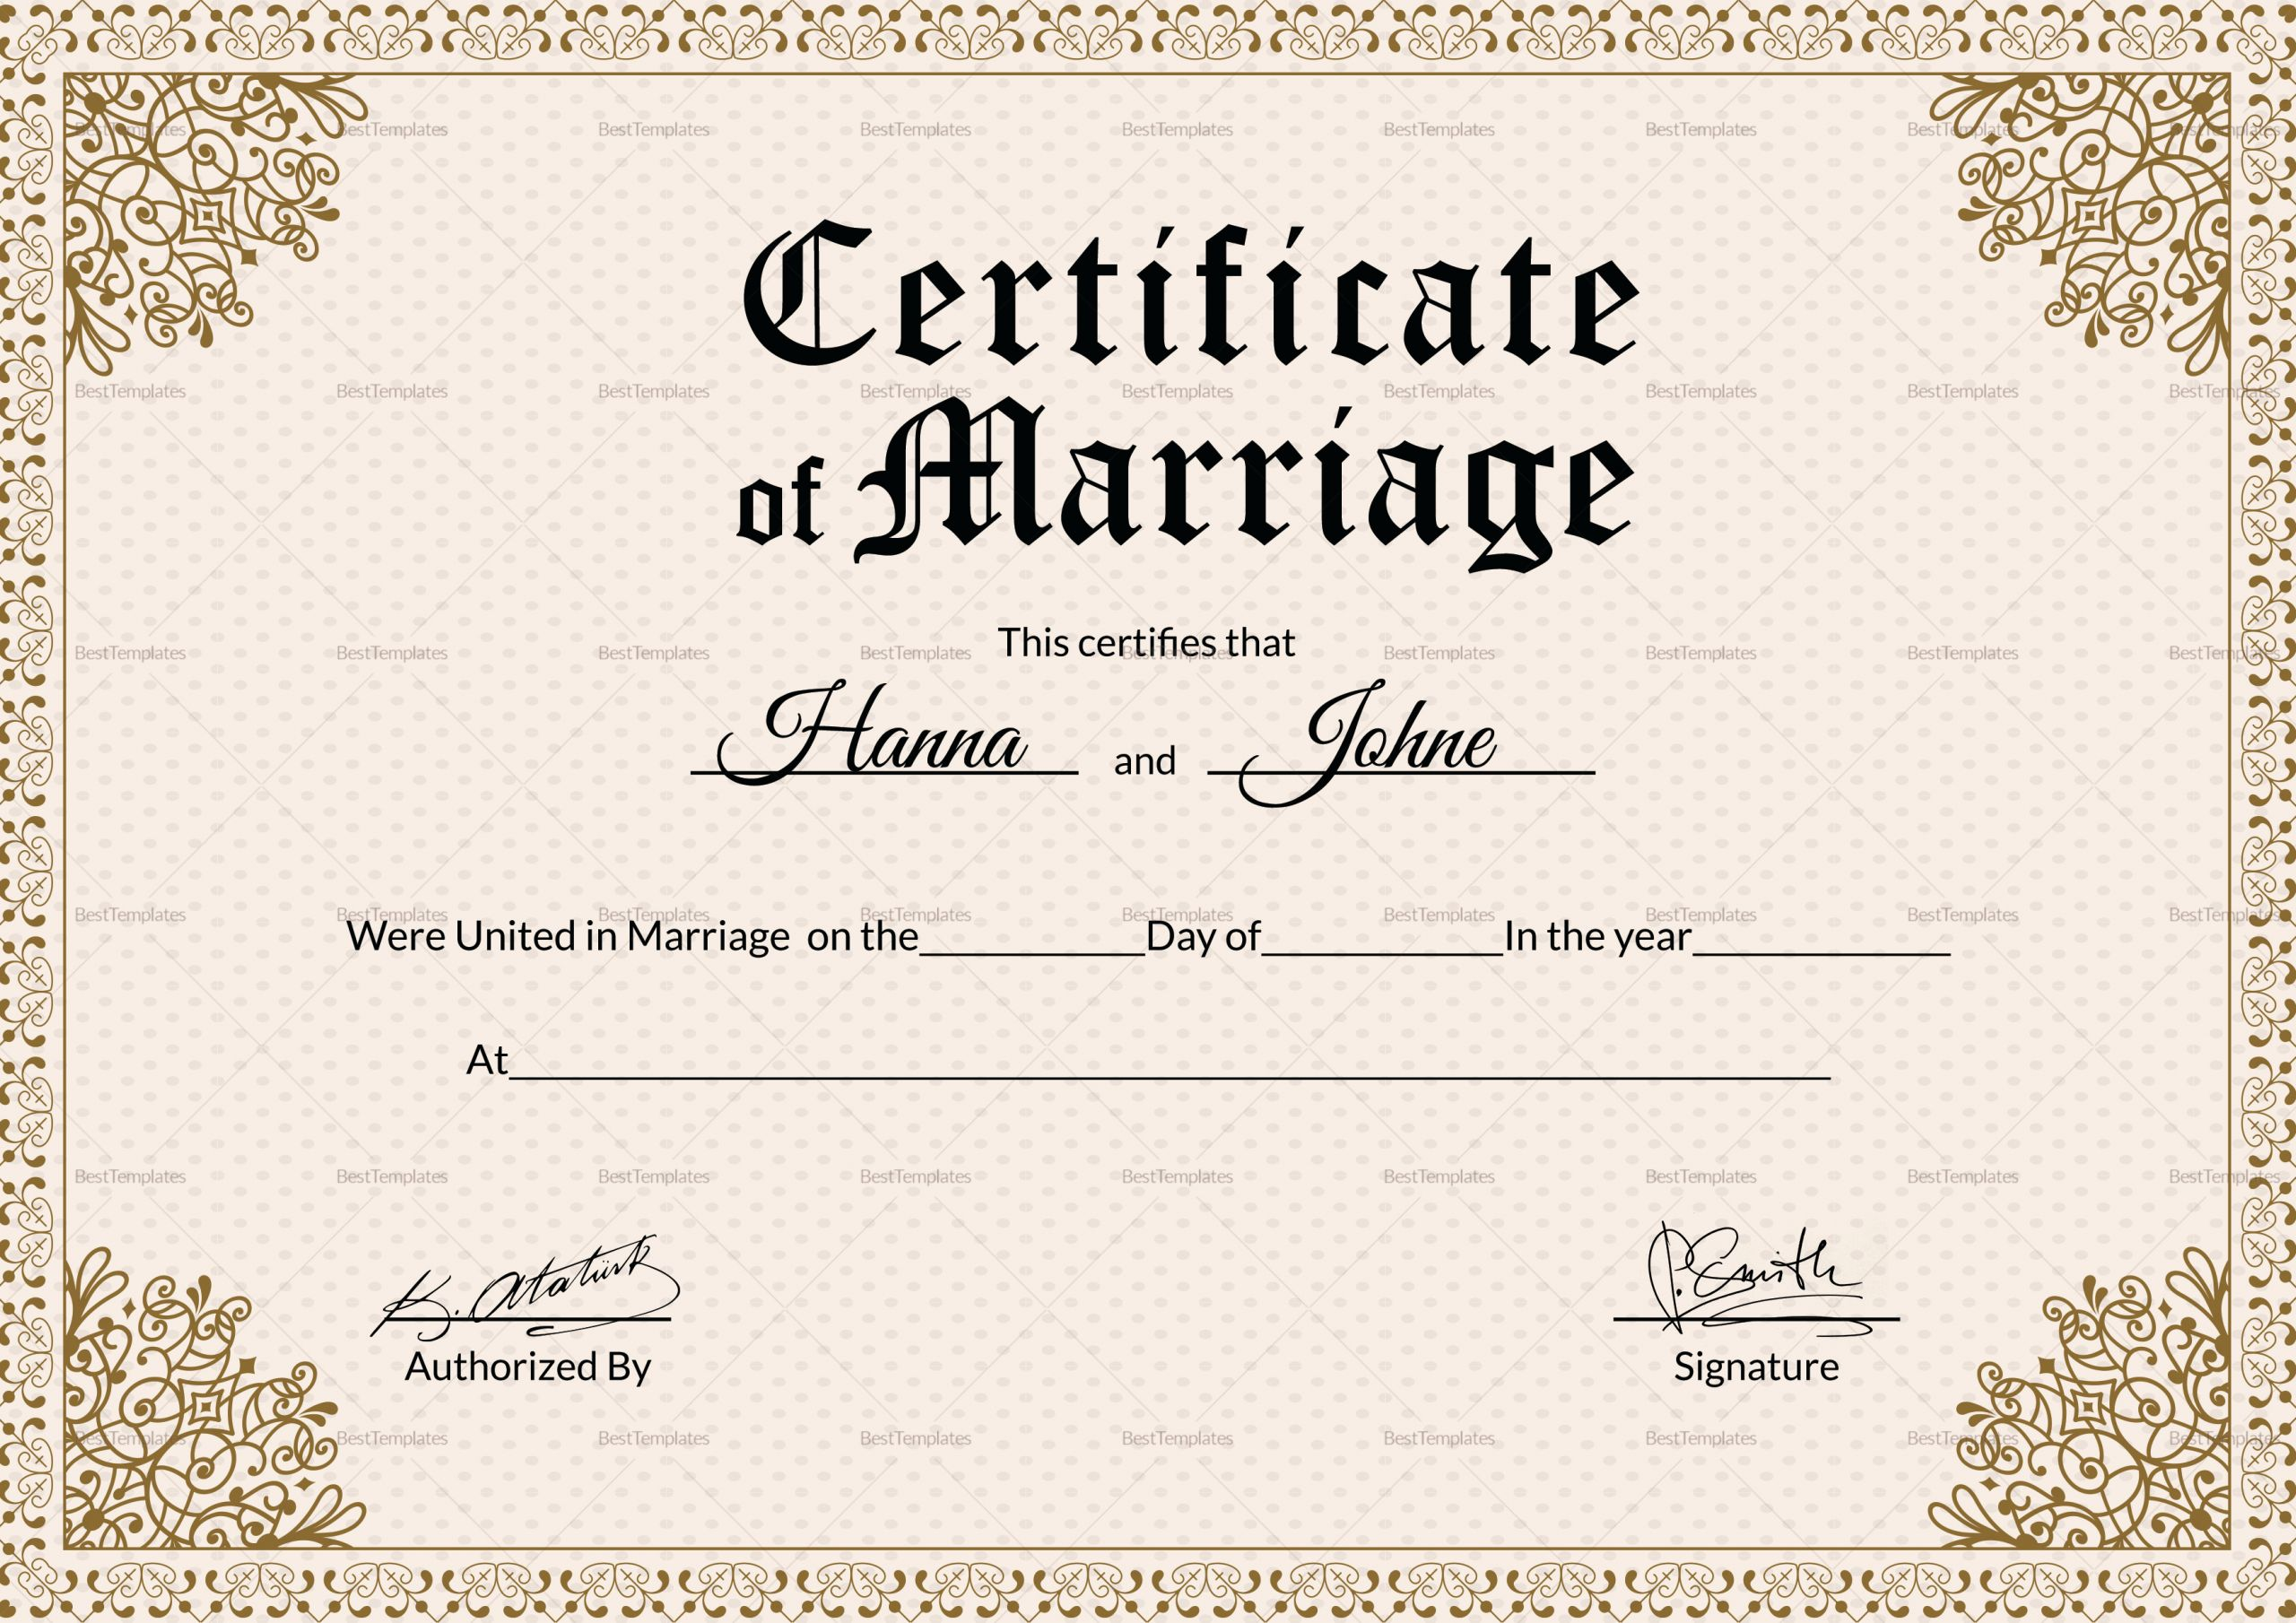 Microsoft Office Marriage Certificate Template Elegant Keepsake Marriage Certificate Design Template In Psd Word